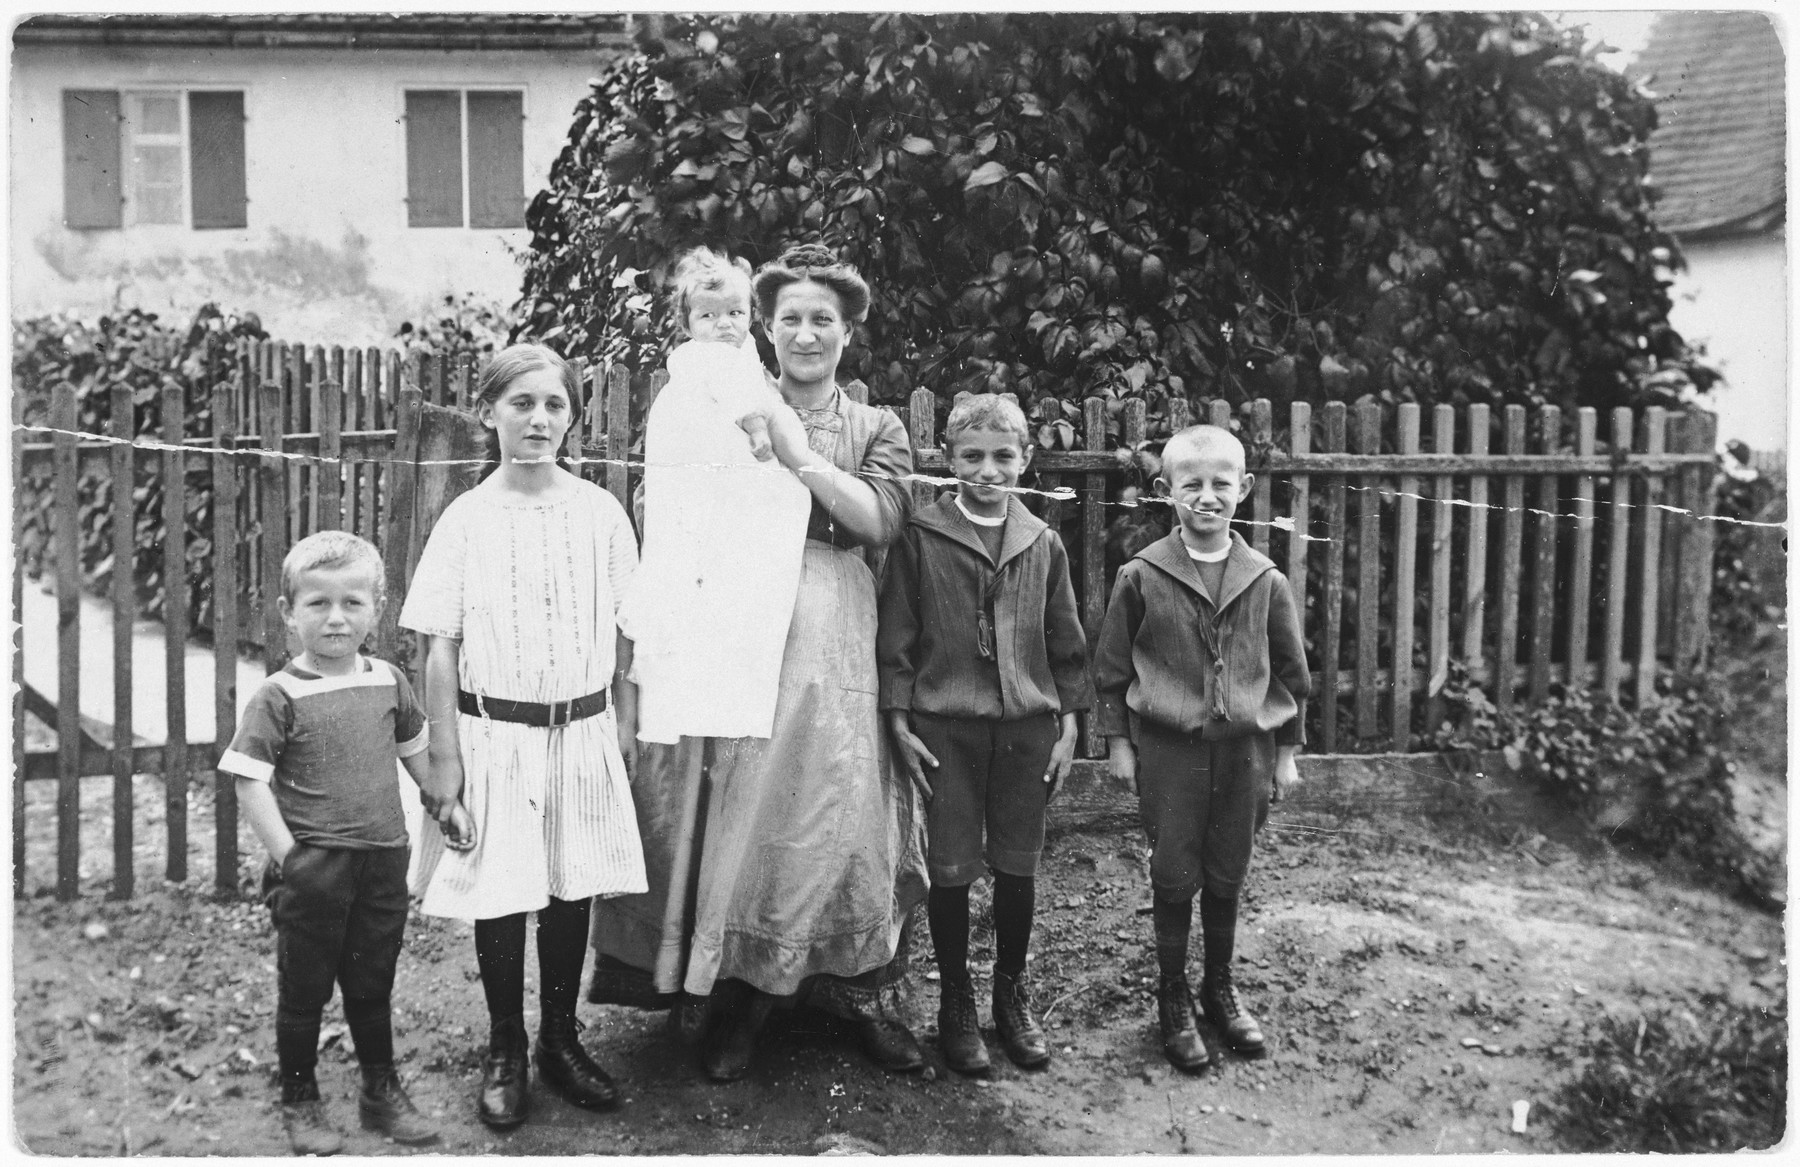 Theresa Frank poses with her five children outside her home in Buttenwiesen, Germany.  Pictured from left to right are: Ernst, Hedwig, Ludwig, Theresa, Siegfried and Karl Frank.  Of those pictured only Siegfried survived.